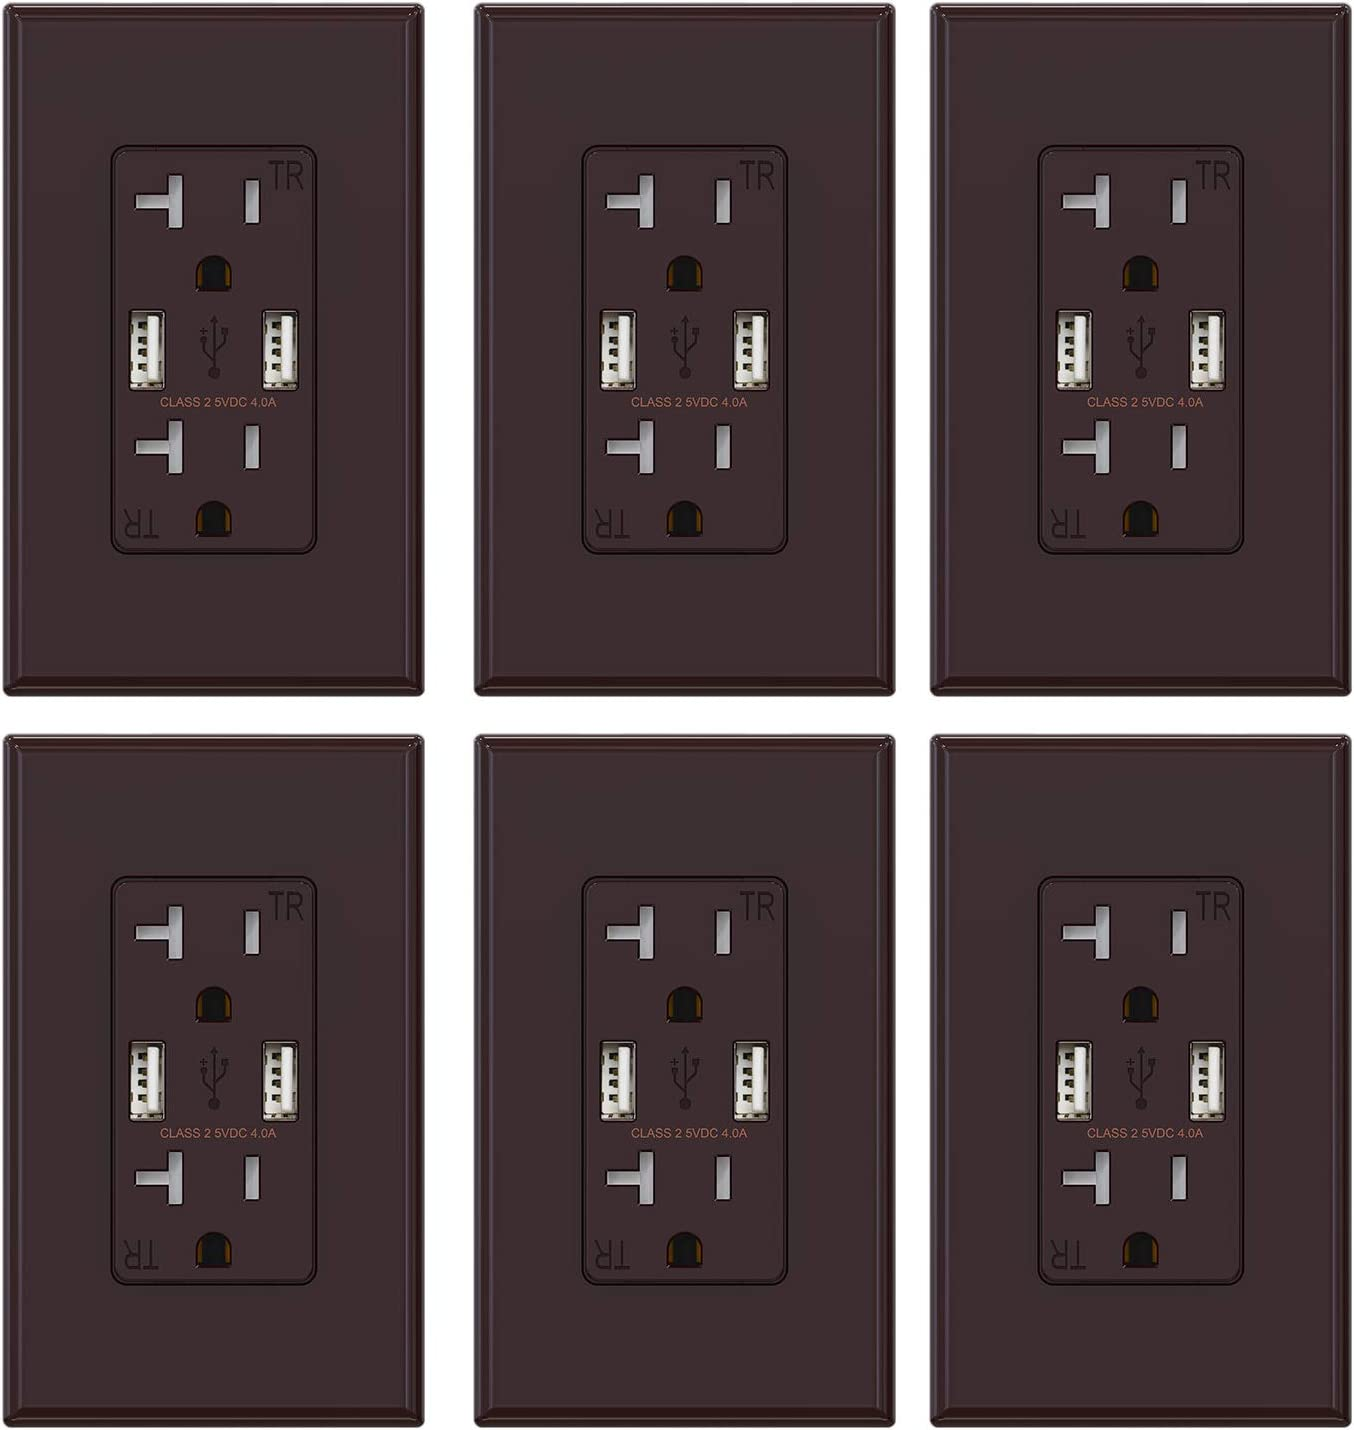 (6 Pack, Glossy Brown) ELEGRP USB Outlet Wall Charger, Dual High Speed 4.0 Amp USB Ports with Smart Chip, 20 Amp Duplex Tamper Resistant Receptacle Plug NEMA 5-20R, Wall Plate Included, UL Listed